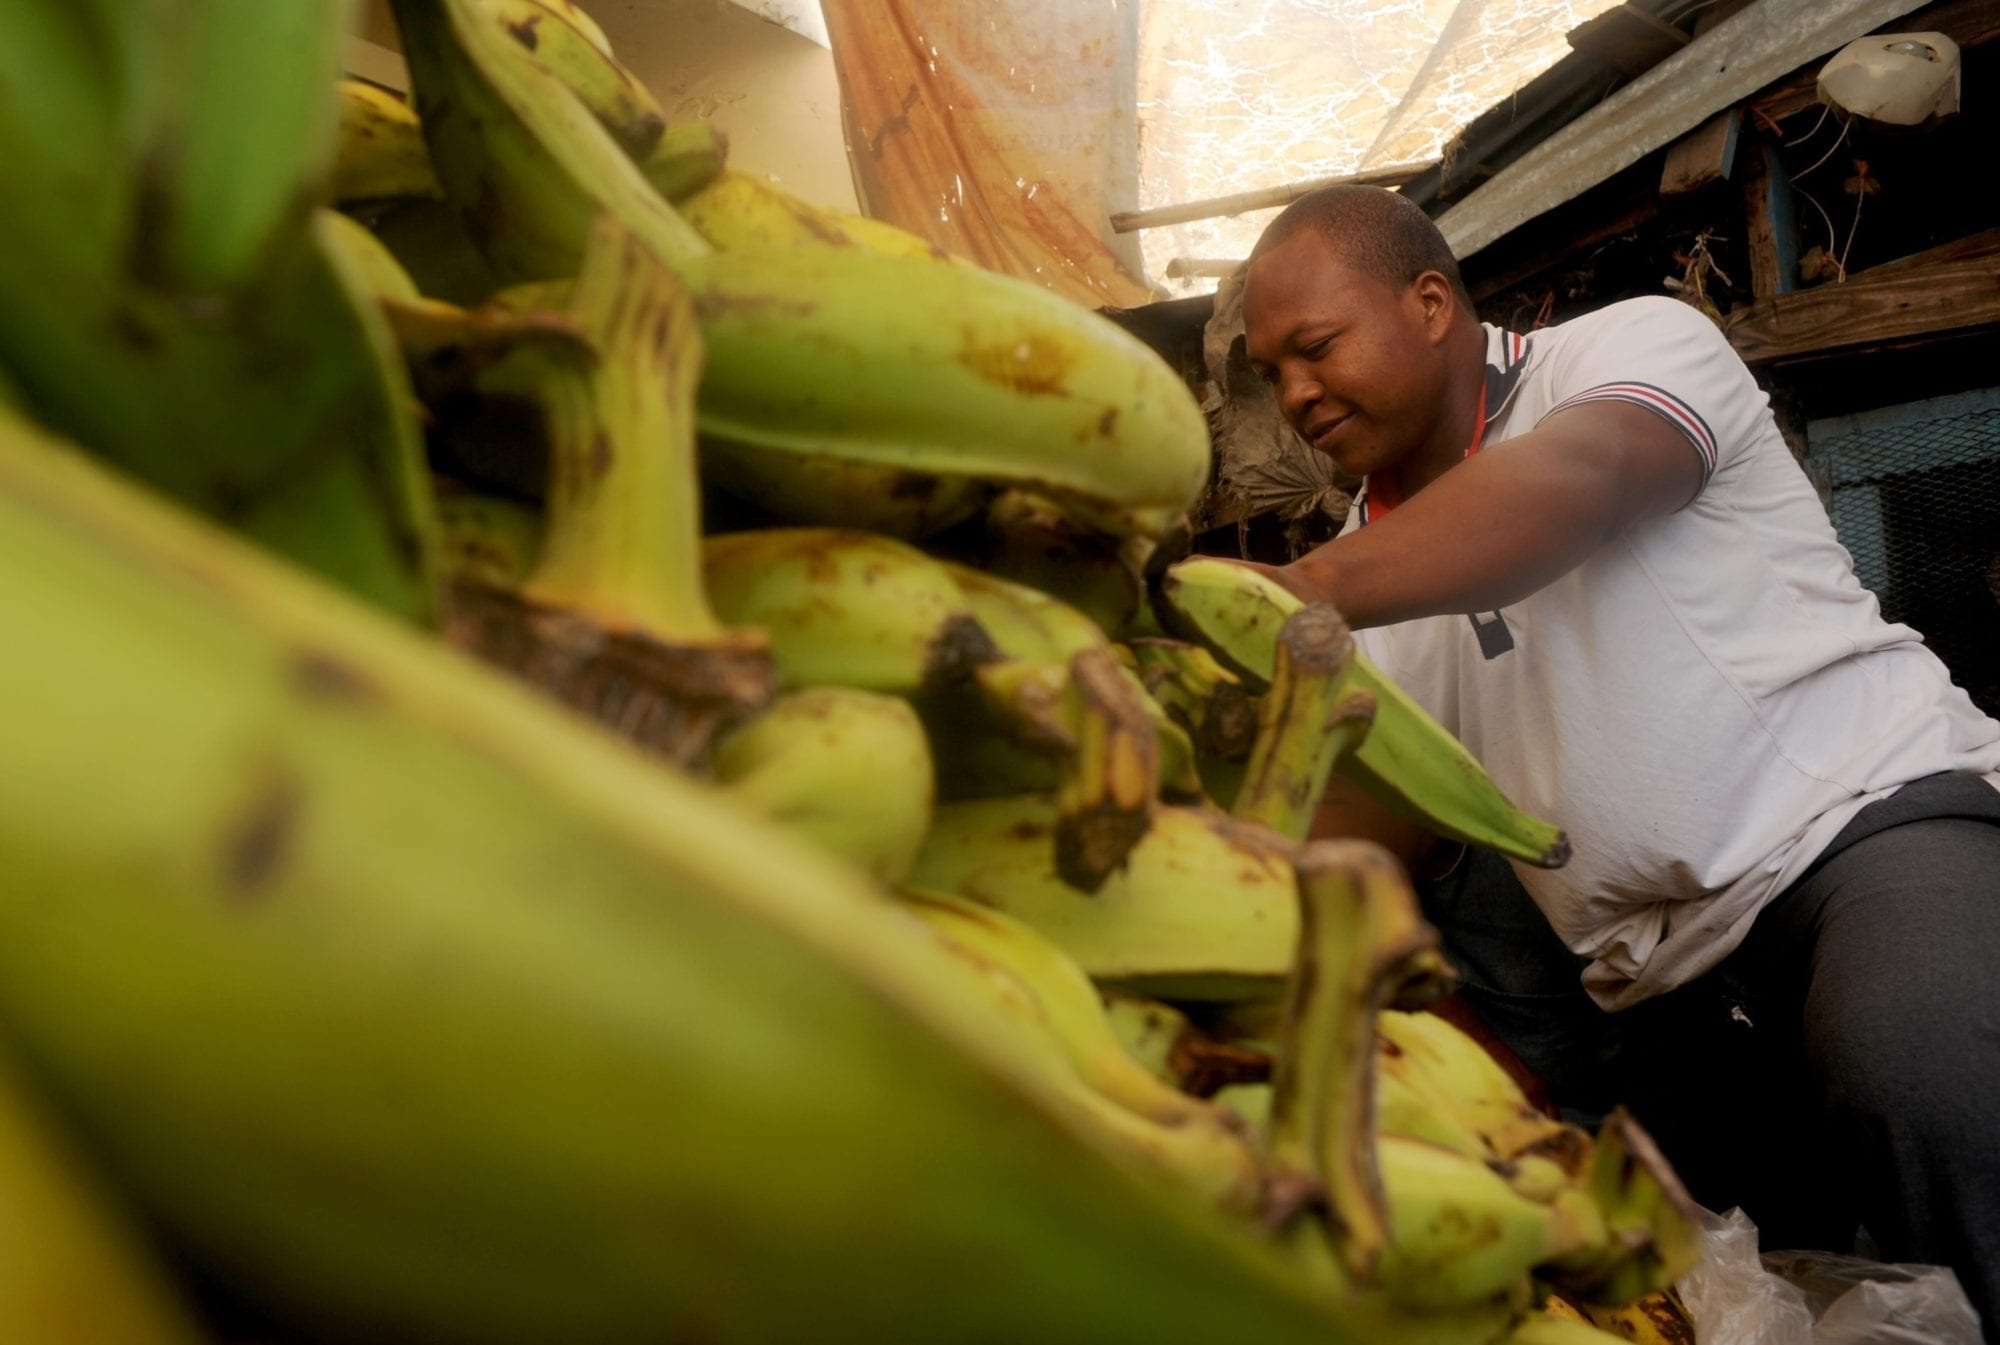 Solidarity Center, Dominican Republic, informal economy, unions, worker rights, plantains